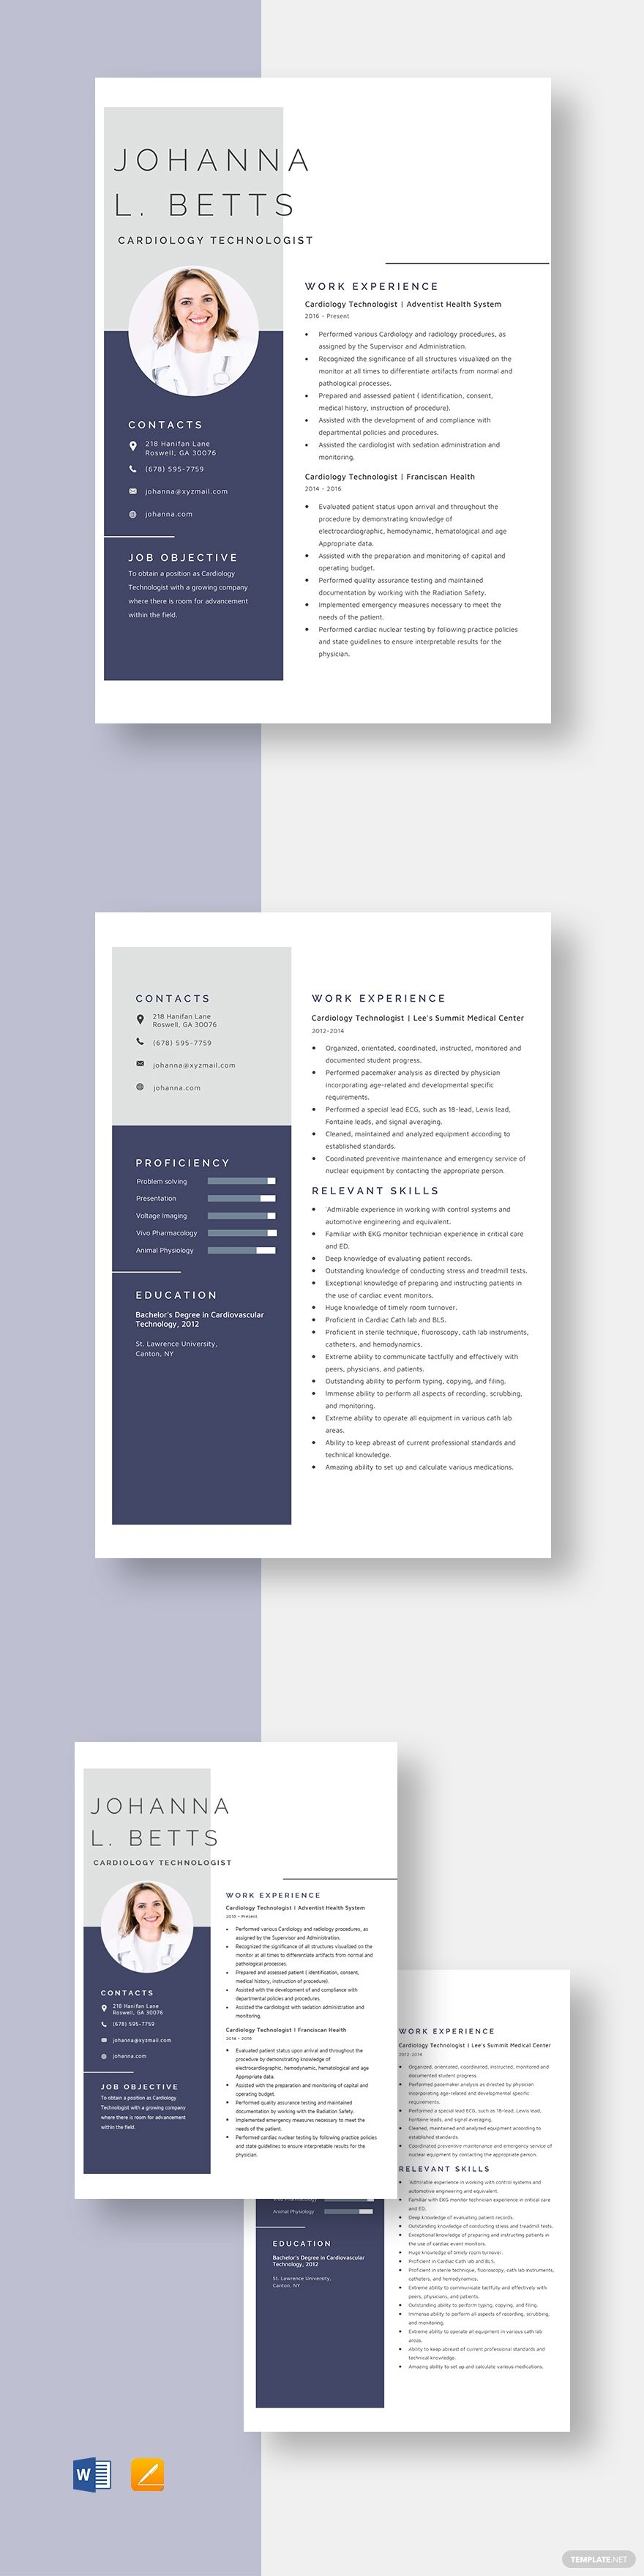 Cardiology Technologist Resume Template In 2020 Executive Resume Template Resume Template Resume